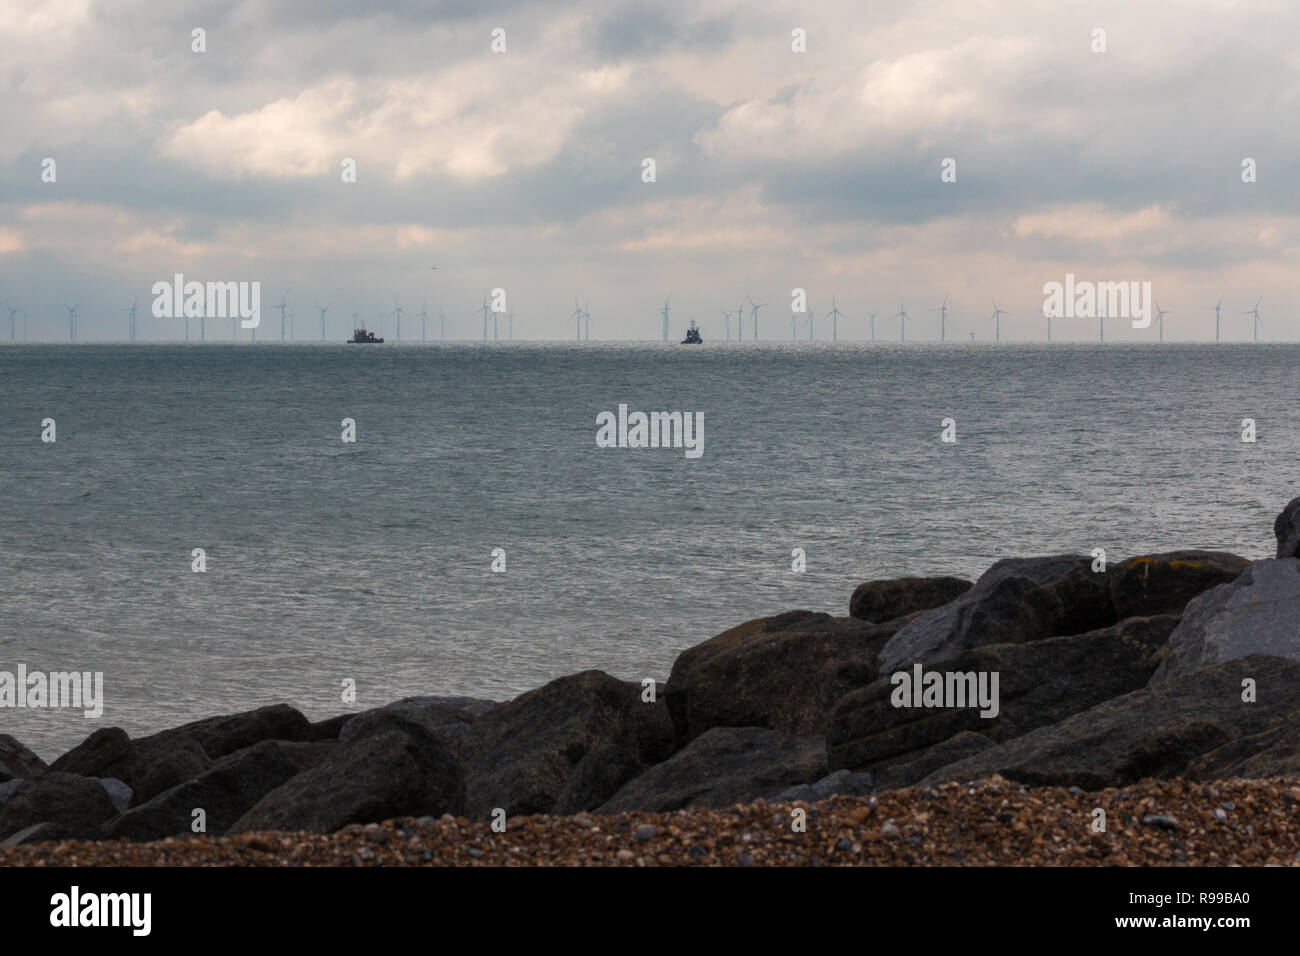 View from the beach of the Rampion Wind Farm, West Sussex - Stock Image